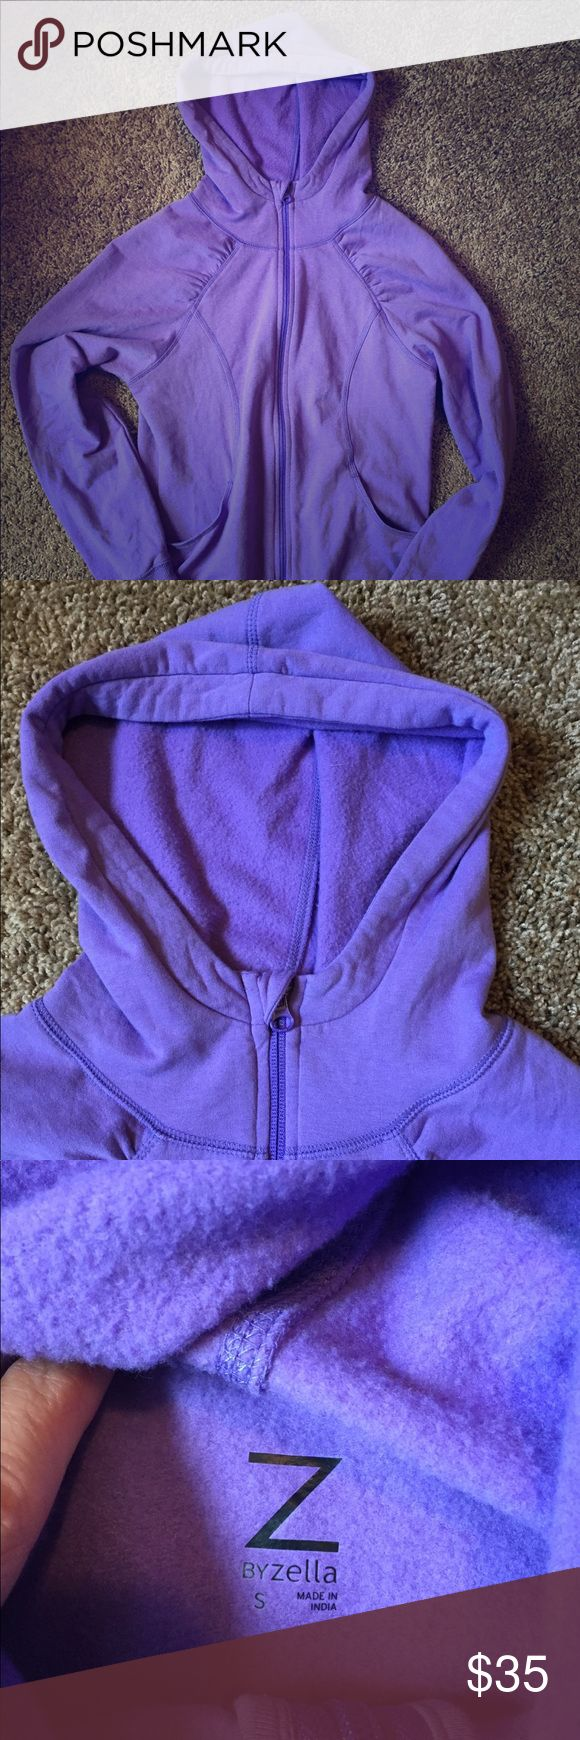 Zella Yoga Hoodie Fall is coming, time to add some hoodies to your yoga wardrobe for the trek in and out of your favorite studio. Get your zen on with this fun purple hoodie. It's so soft you'll never want to take it off. It also has thumb holes Zella Tops Sweatshirts & Hoodies